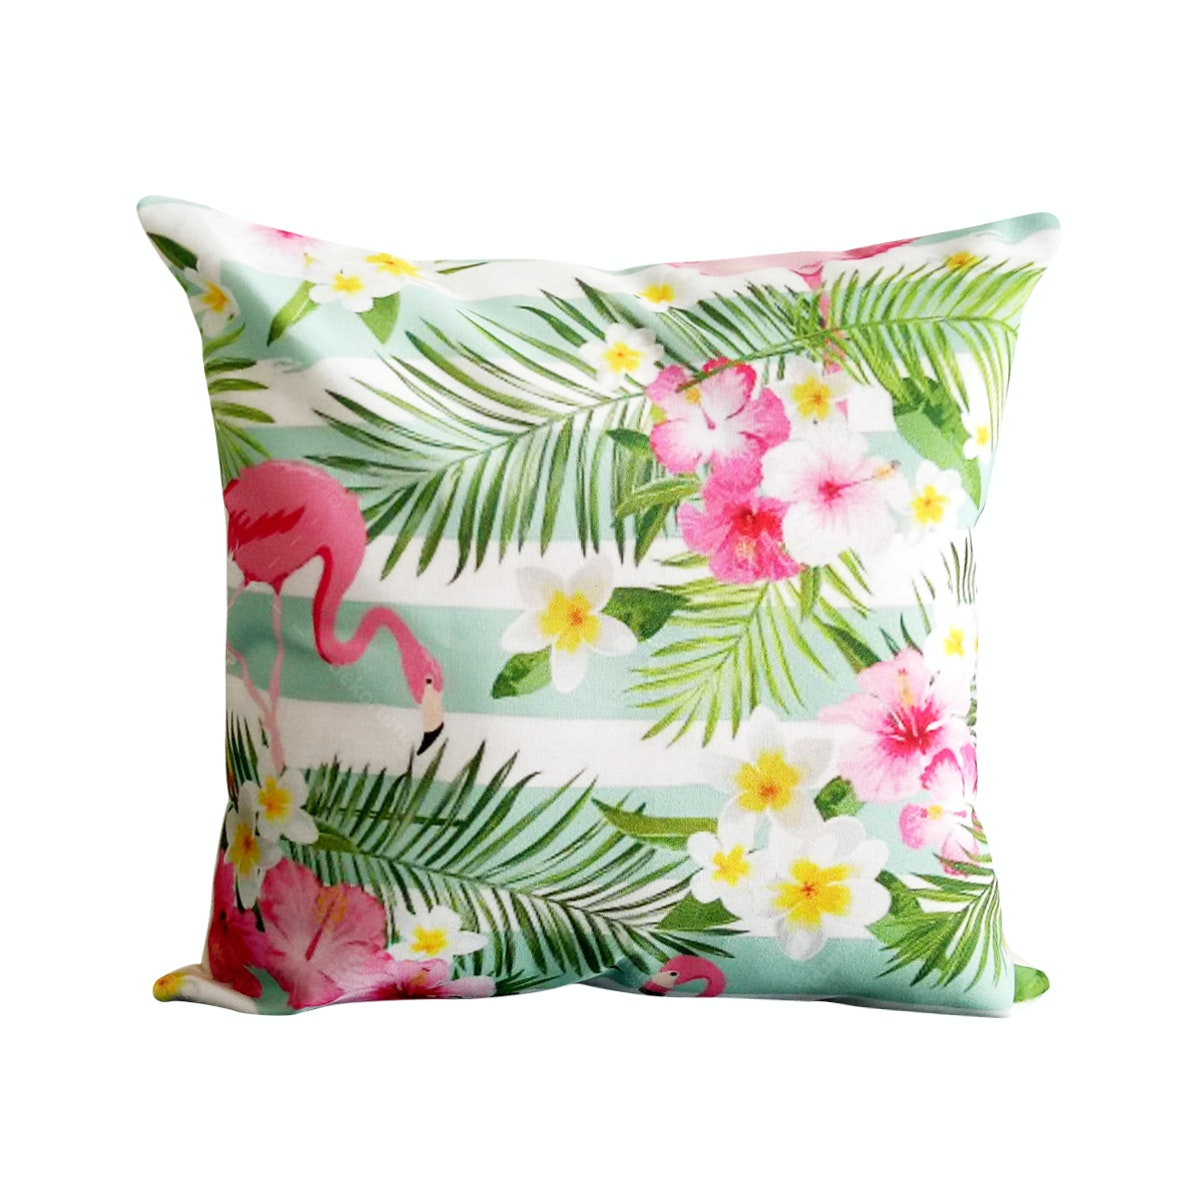 Megallery Cover Cushion C97